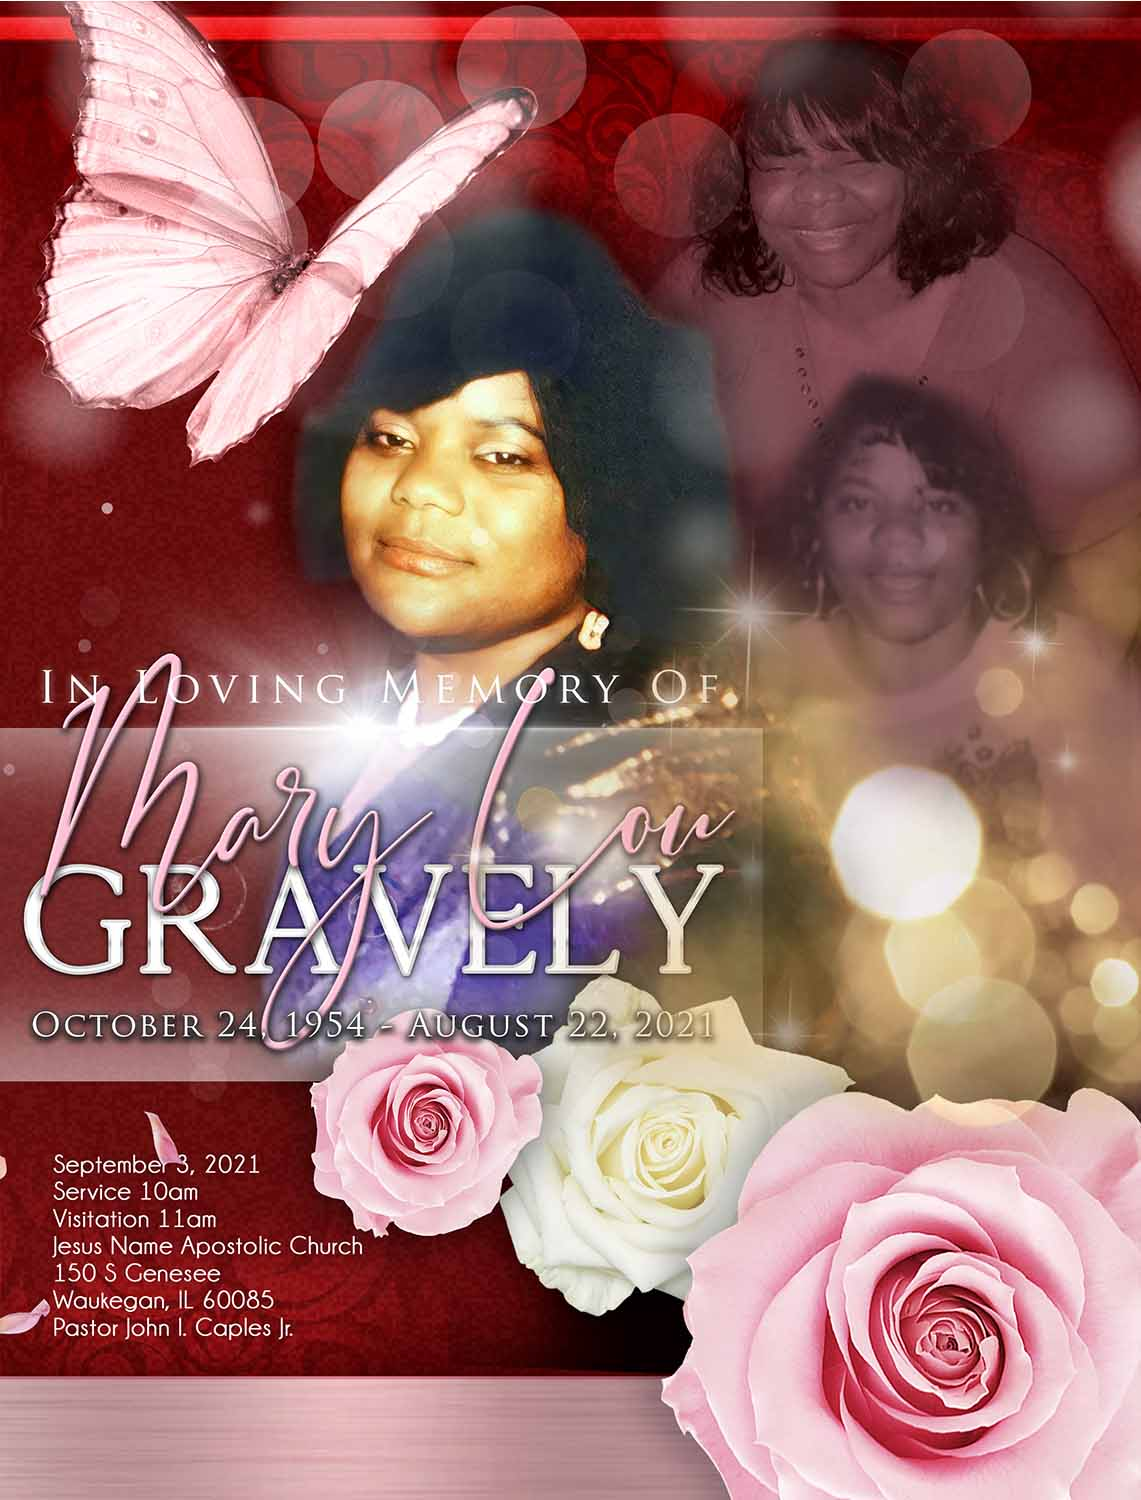 Mary Lou Gravely 1954-2021